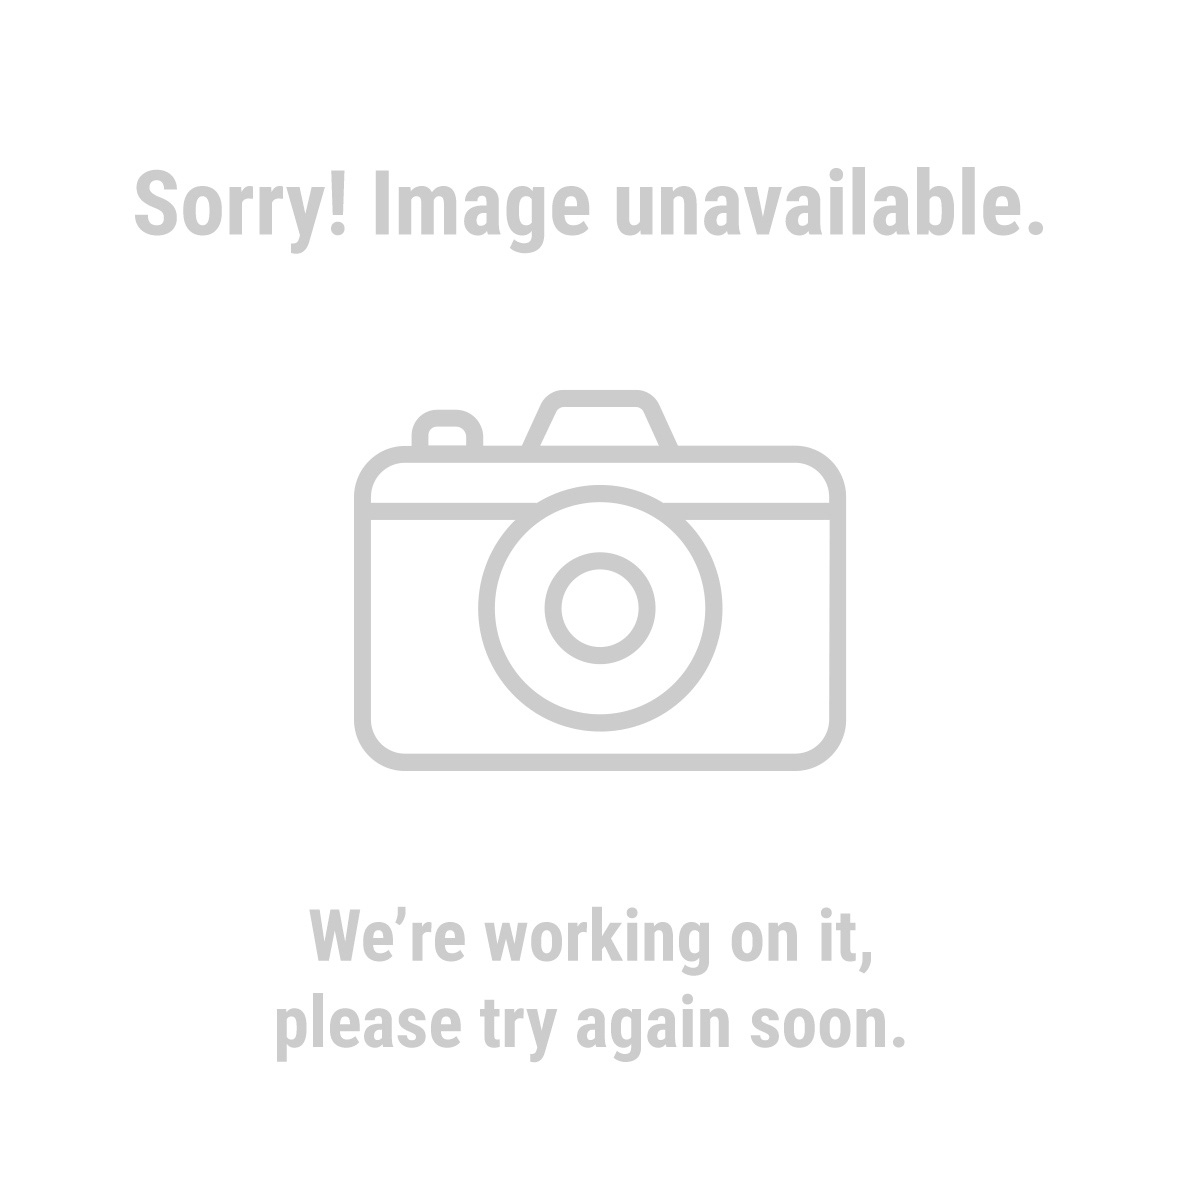 Western Safety 62261 Yellow Rain Suit, X-Large 2 Pc